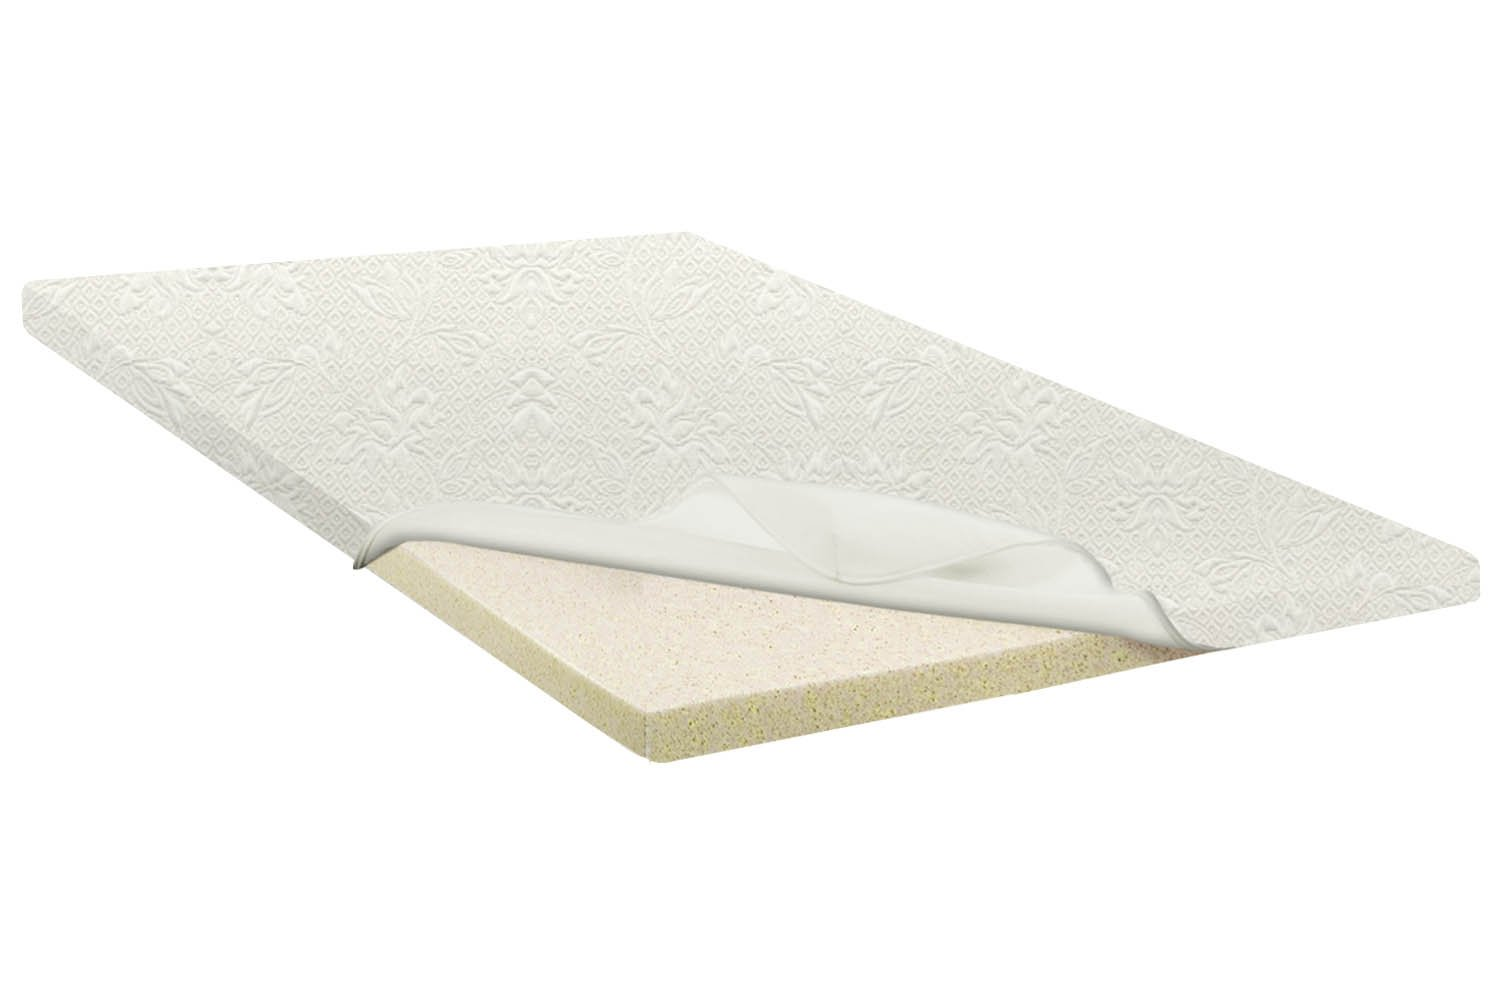 Continental Sleep 2 High Density Foam Mattress Topper With Removable Cover T Ebay